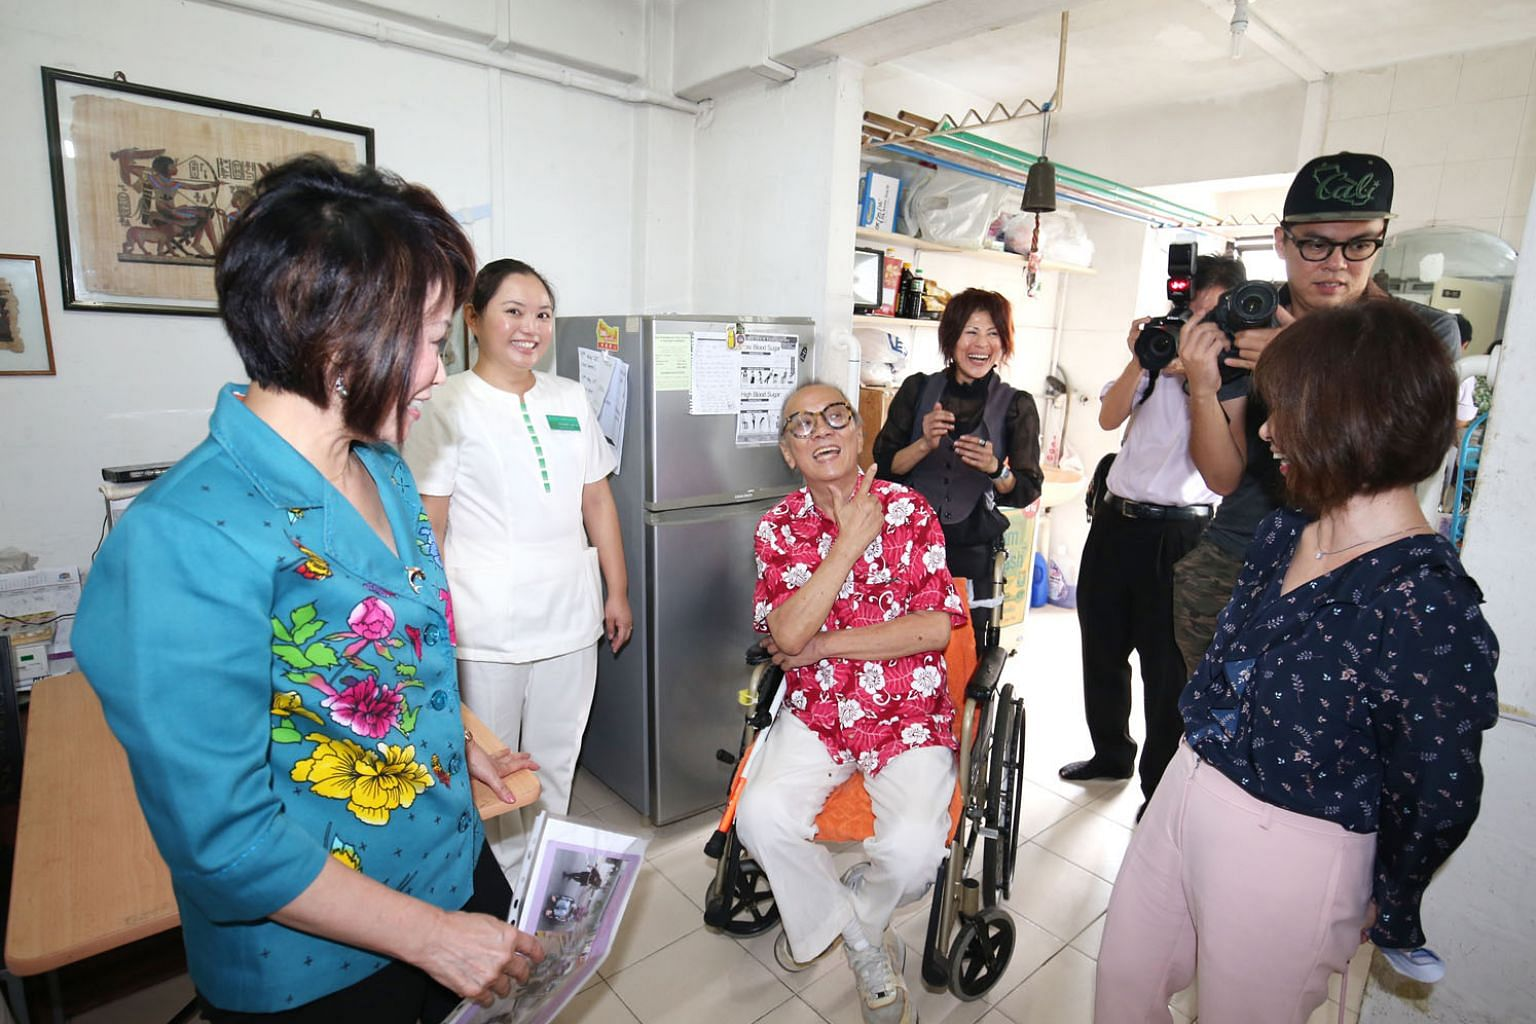 Mr Wong Ah Ann, 68, a beneficiary of a newly launched community care programme, sharing his experience with Dr Lily Neo (in light blue), an MP for Jalan Besar GRC, and Senior Minister of State for Health Amy Khor (far right). Yesterday, SingHealth Regiona